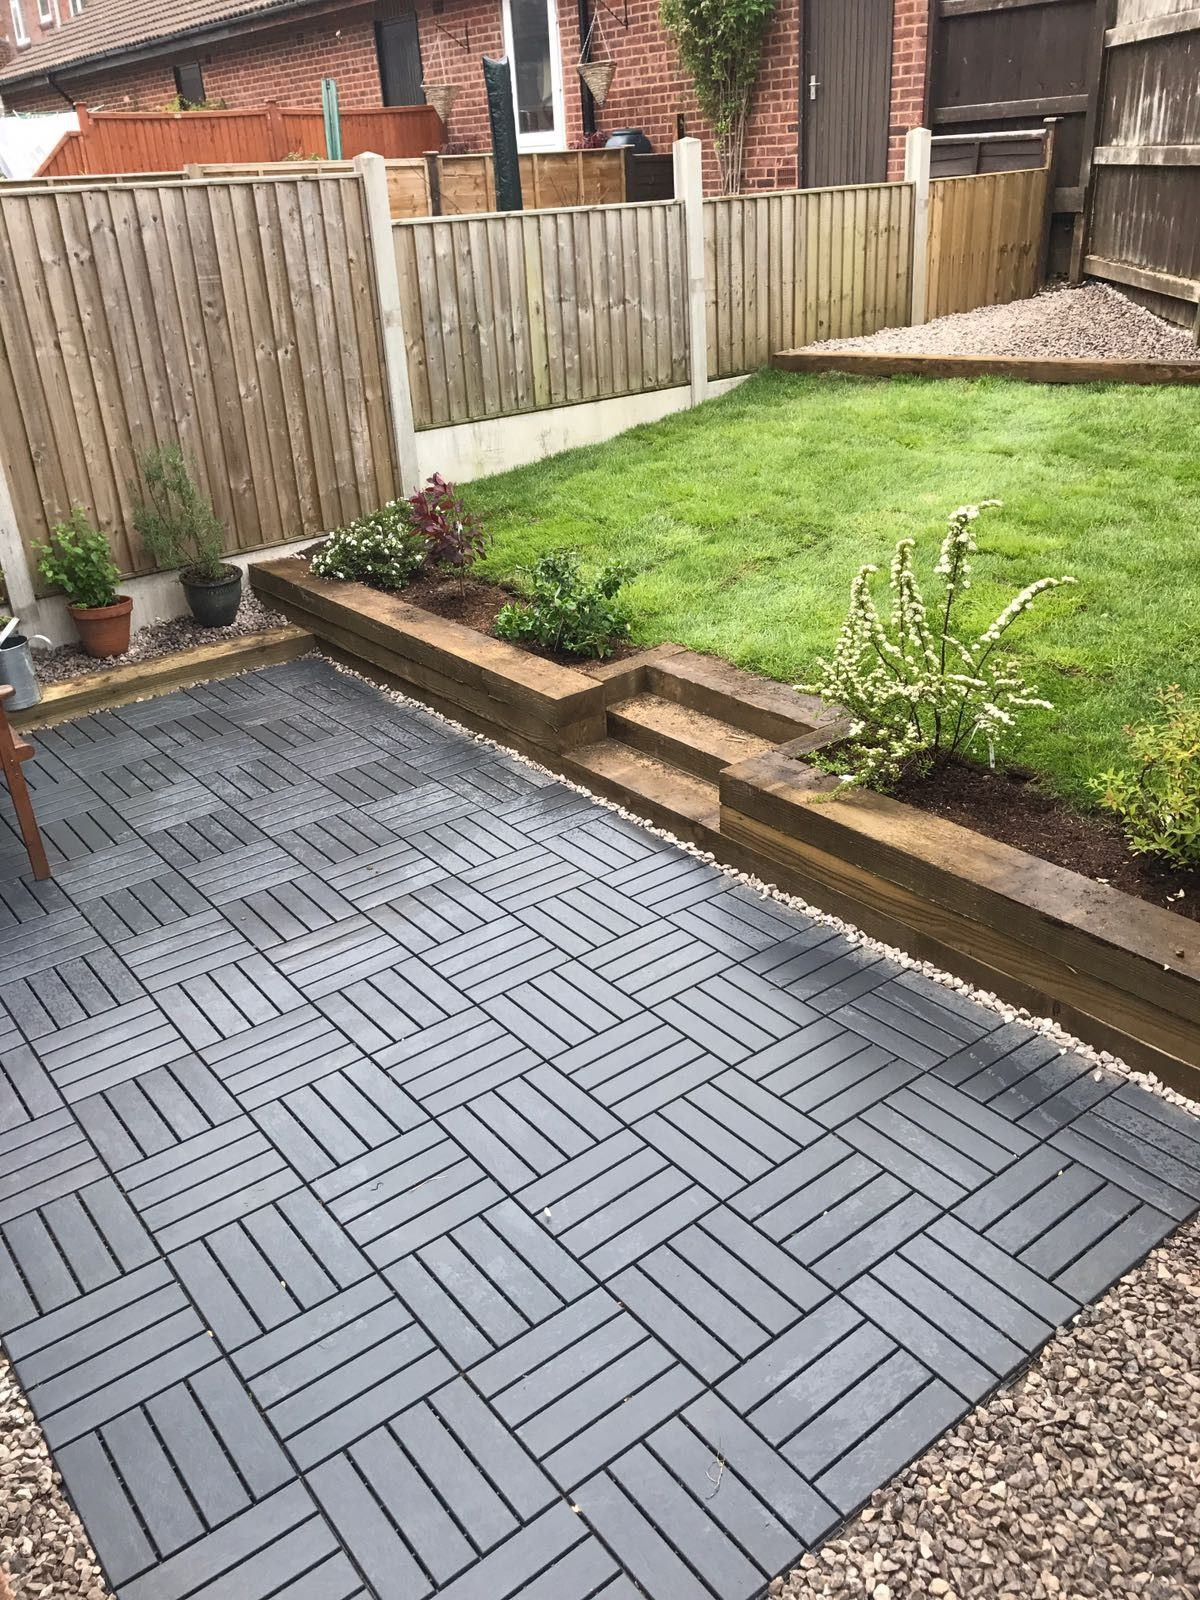 Ikea Runnen Decking Tiles Used To Create A New Garden Ikea Patio Patio Flooring Patio Tiles